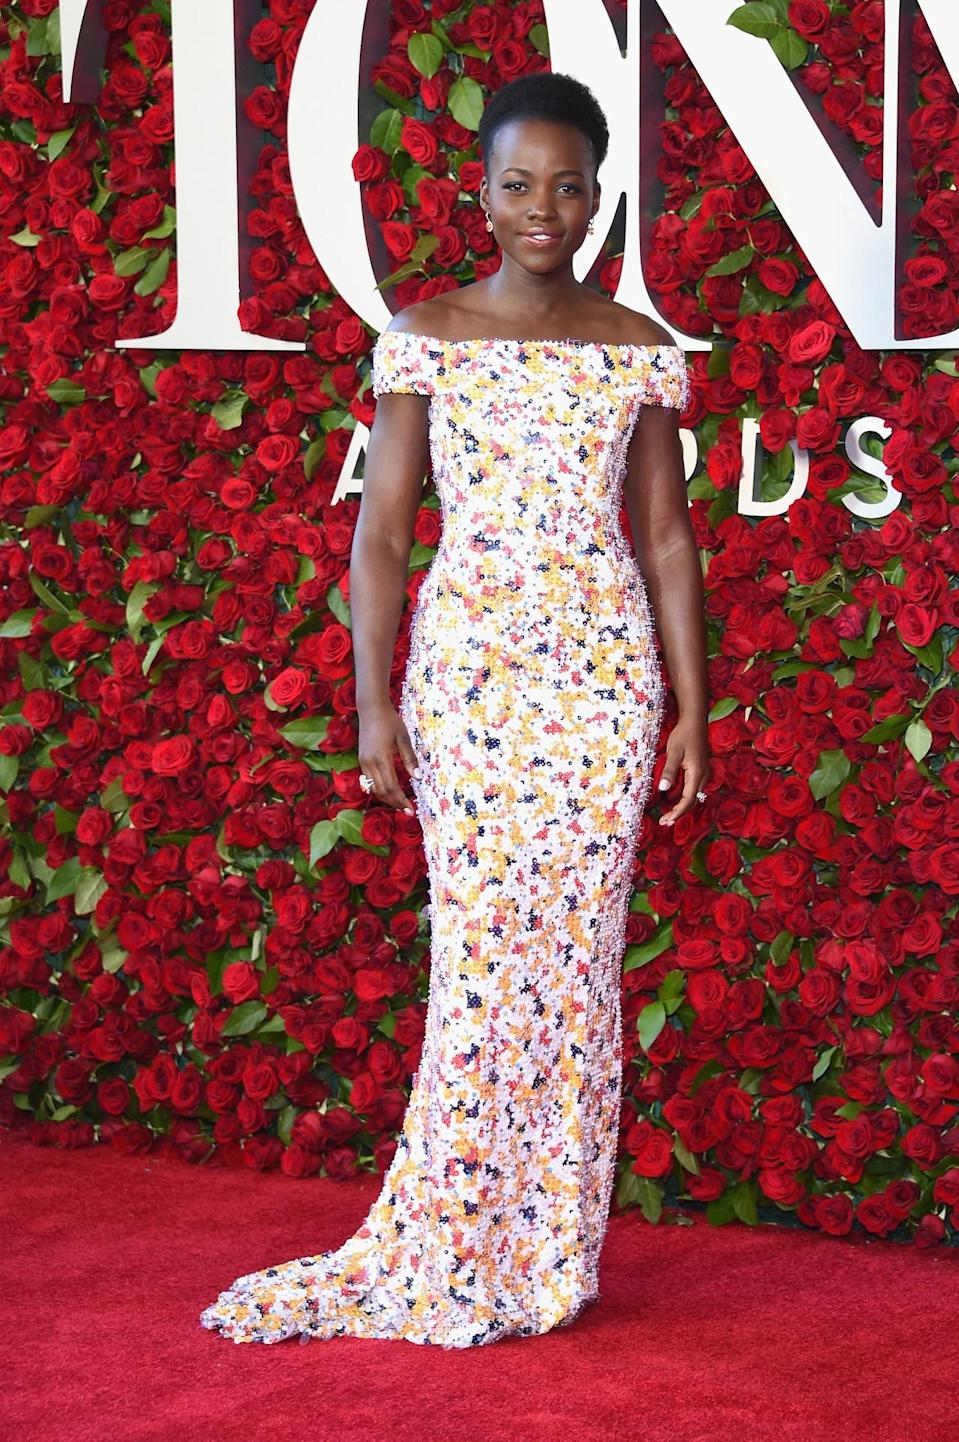 <p>Lupita Nyong'o's character in <i>Eclipsed</i>, for which she was nominated for a Tony for Best Actress, wears sweaty rags onstage, but the actress cleaned up for the red carpet in a floral gown custom designed by Jason Wu for Hugo Boss. <i>(Photo: Getty Images)</i></p>